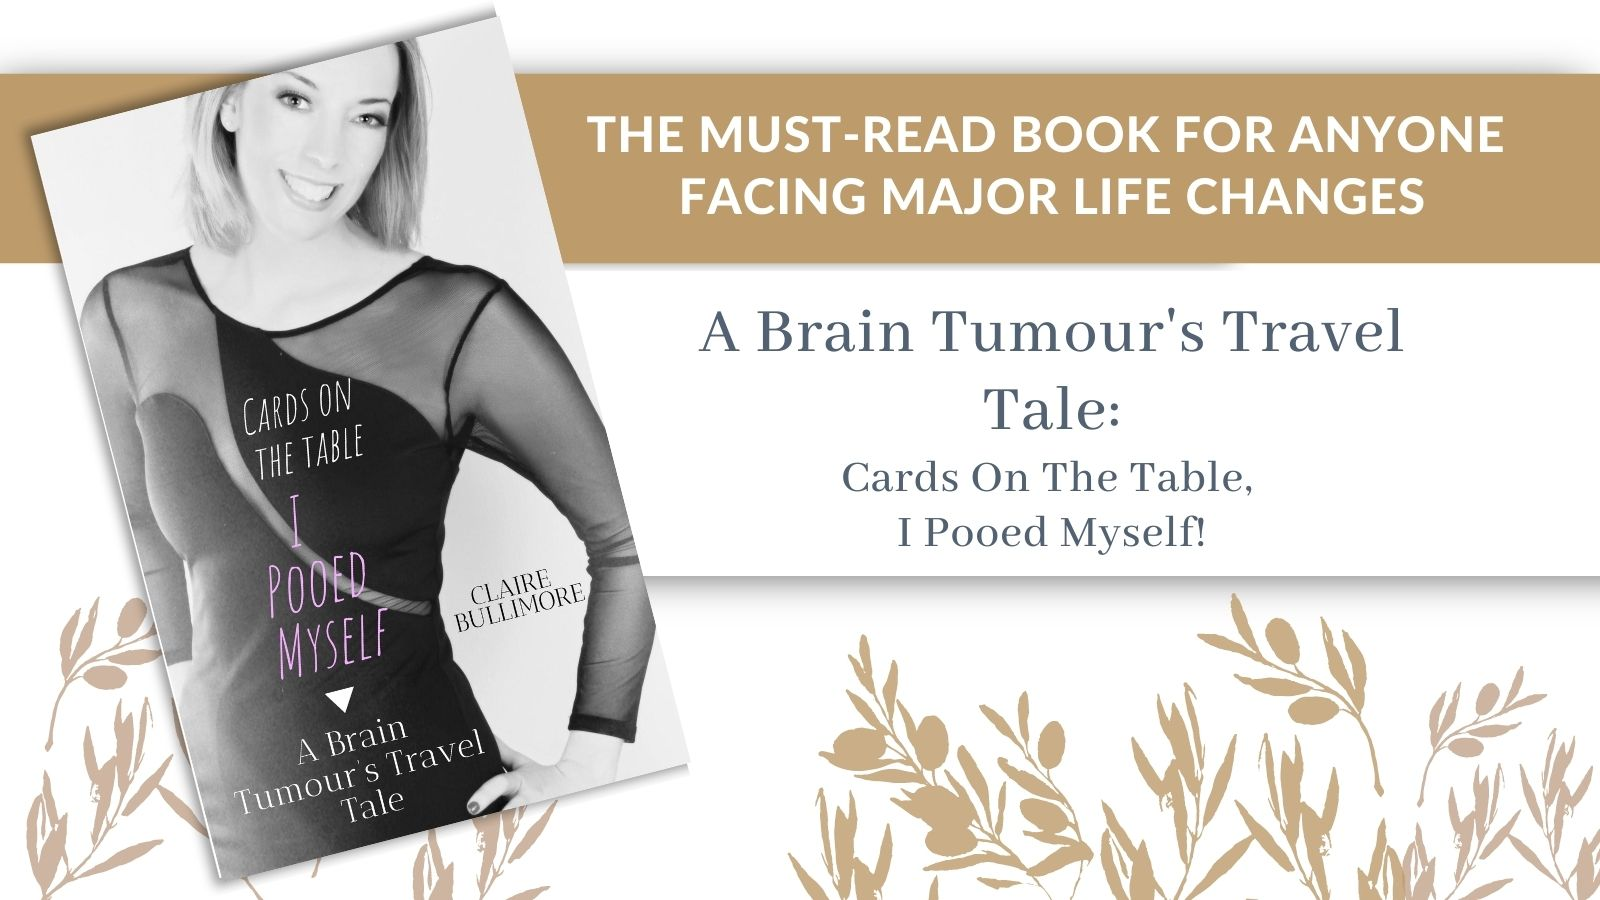 A Brain Tumour's Travel Tale: Cards On The Table, I Pooed Myself Book by Claire Bullimore